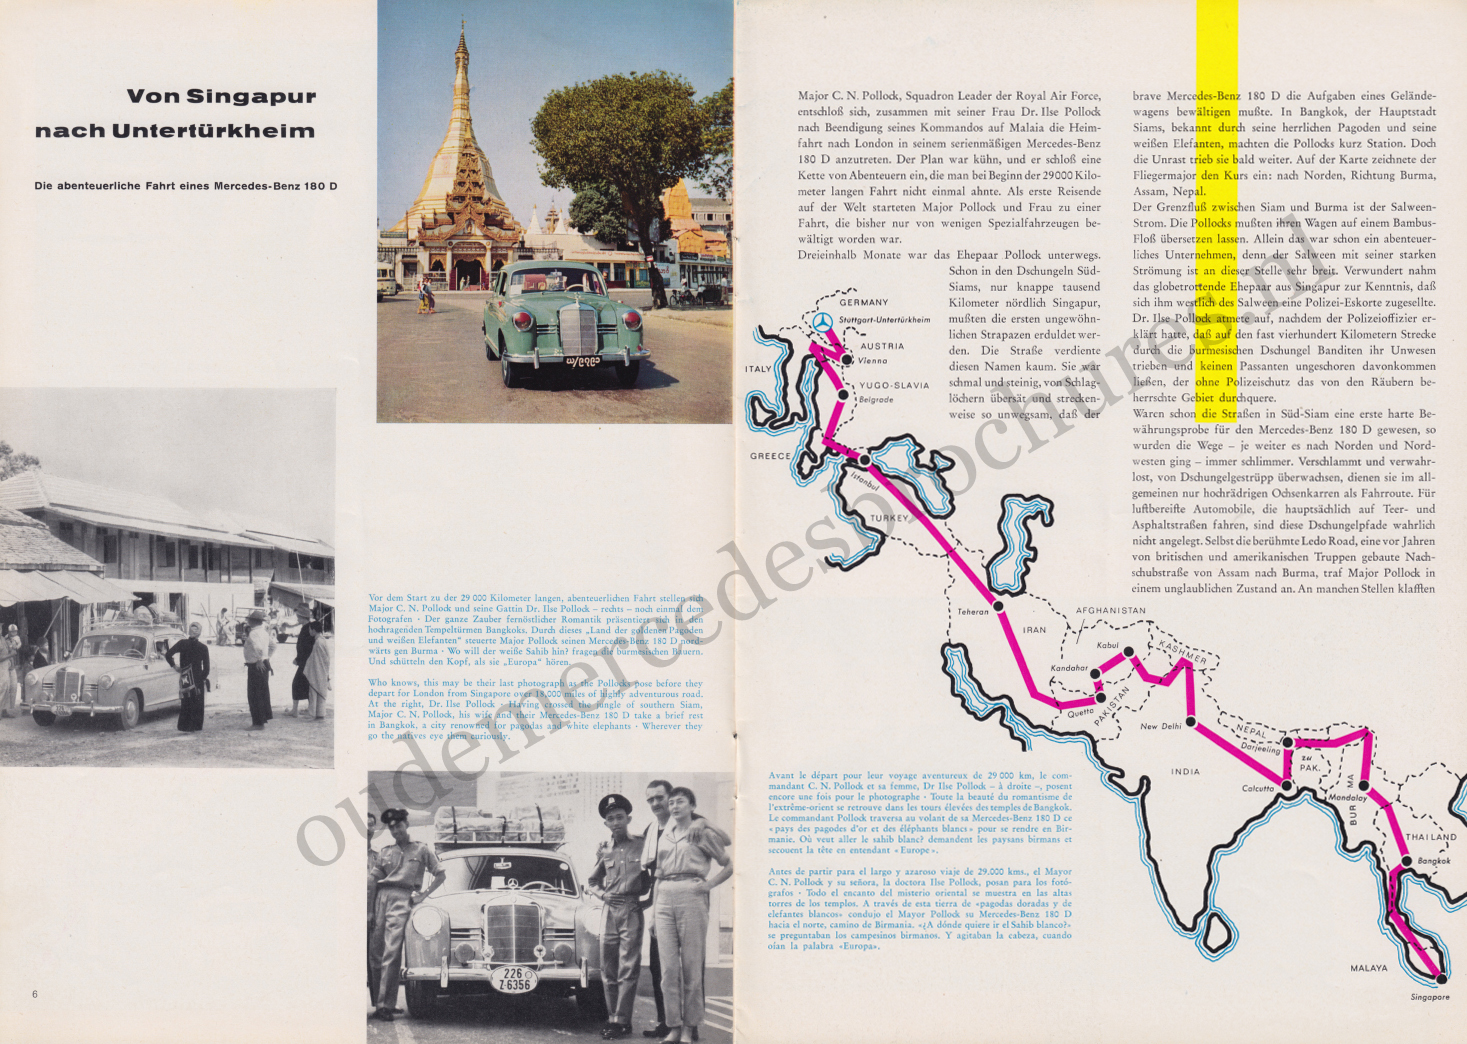 (REVISTA): Periódico In aller welt n.º 32 - Mercedes-Benz no mundo - 1959 - multilingue 004